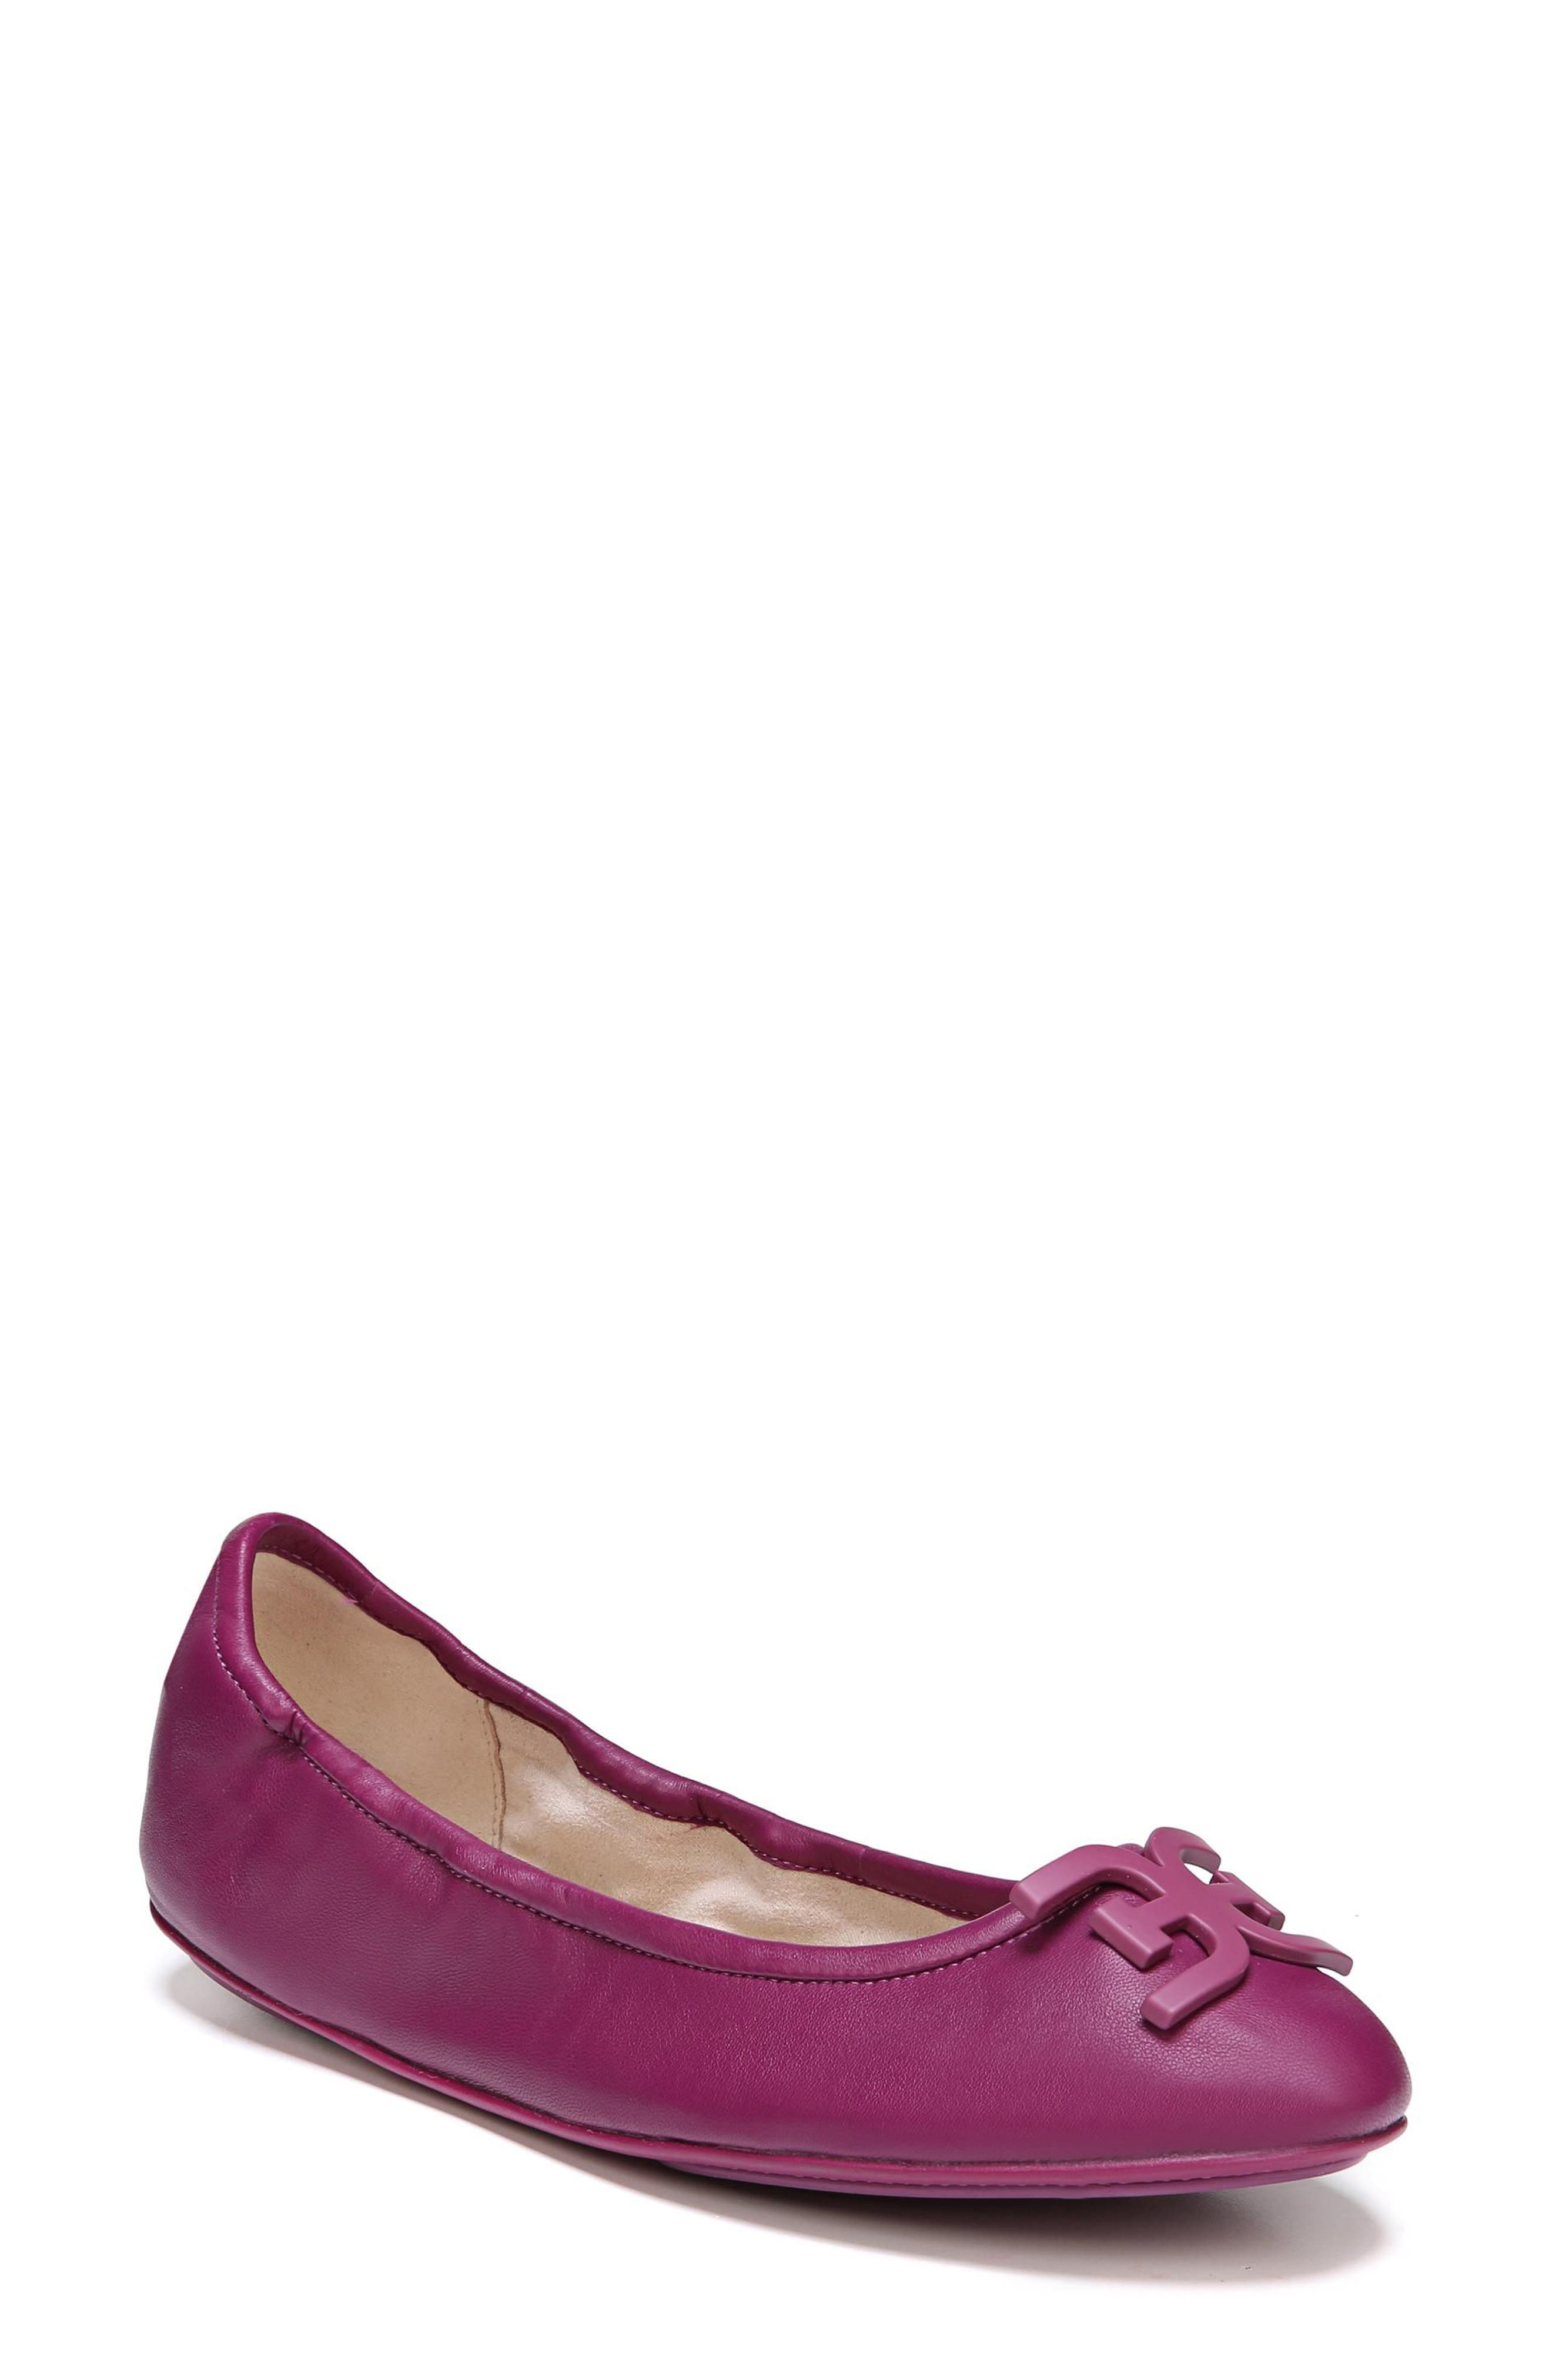 Florence Ballet Flat,                             Main thumbnail 1, color,                             Mulberry Pink Leather